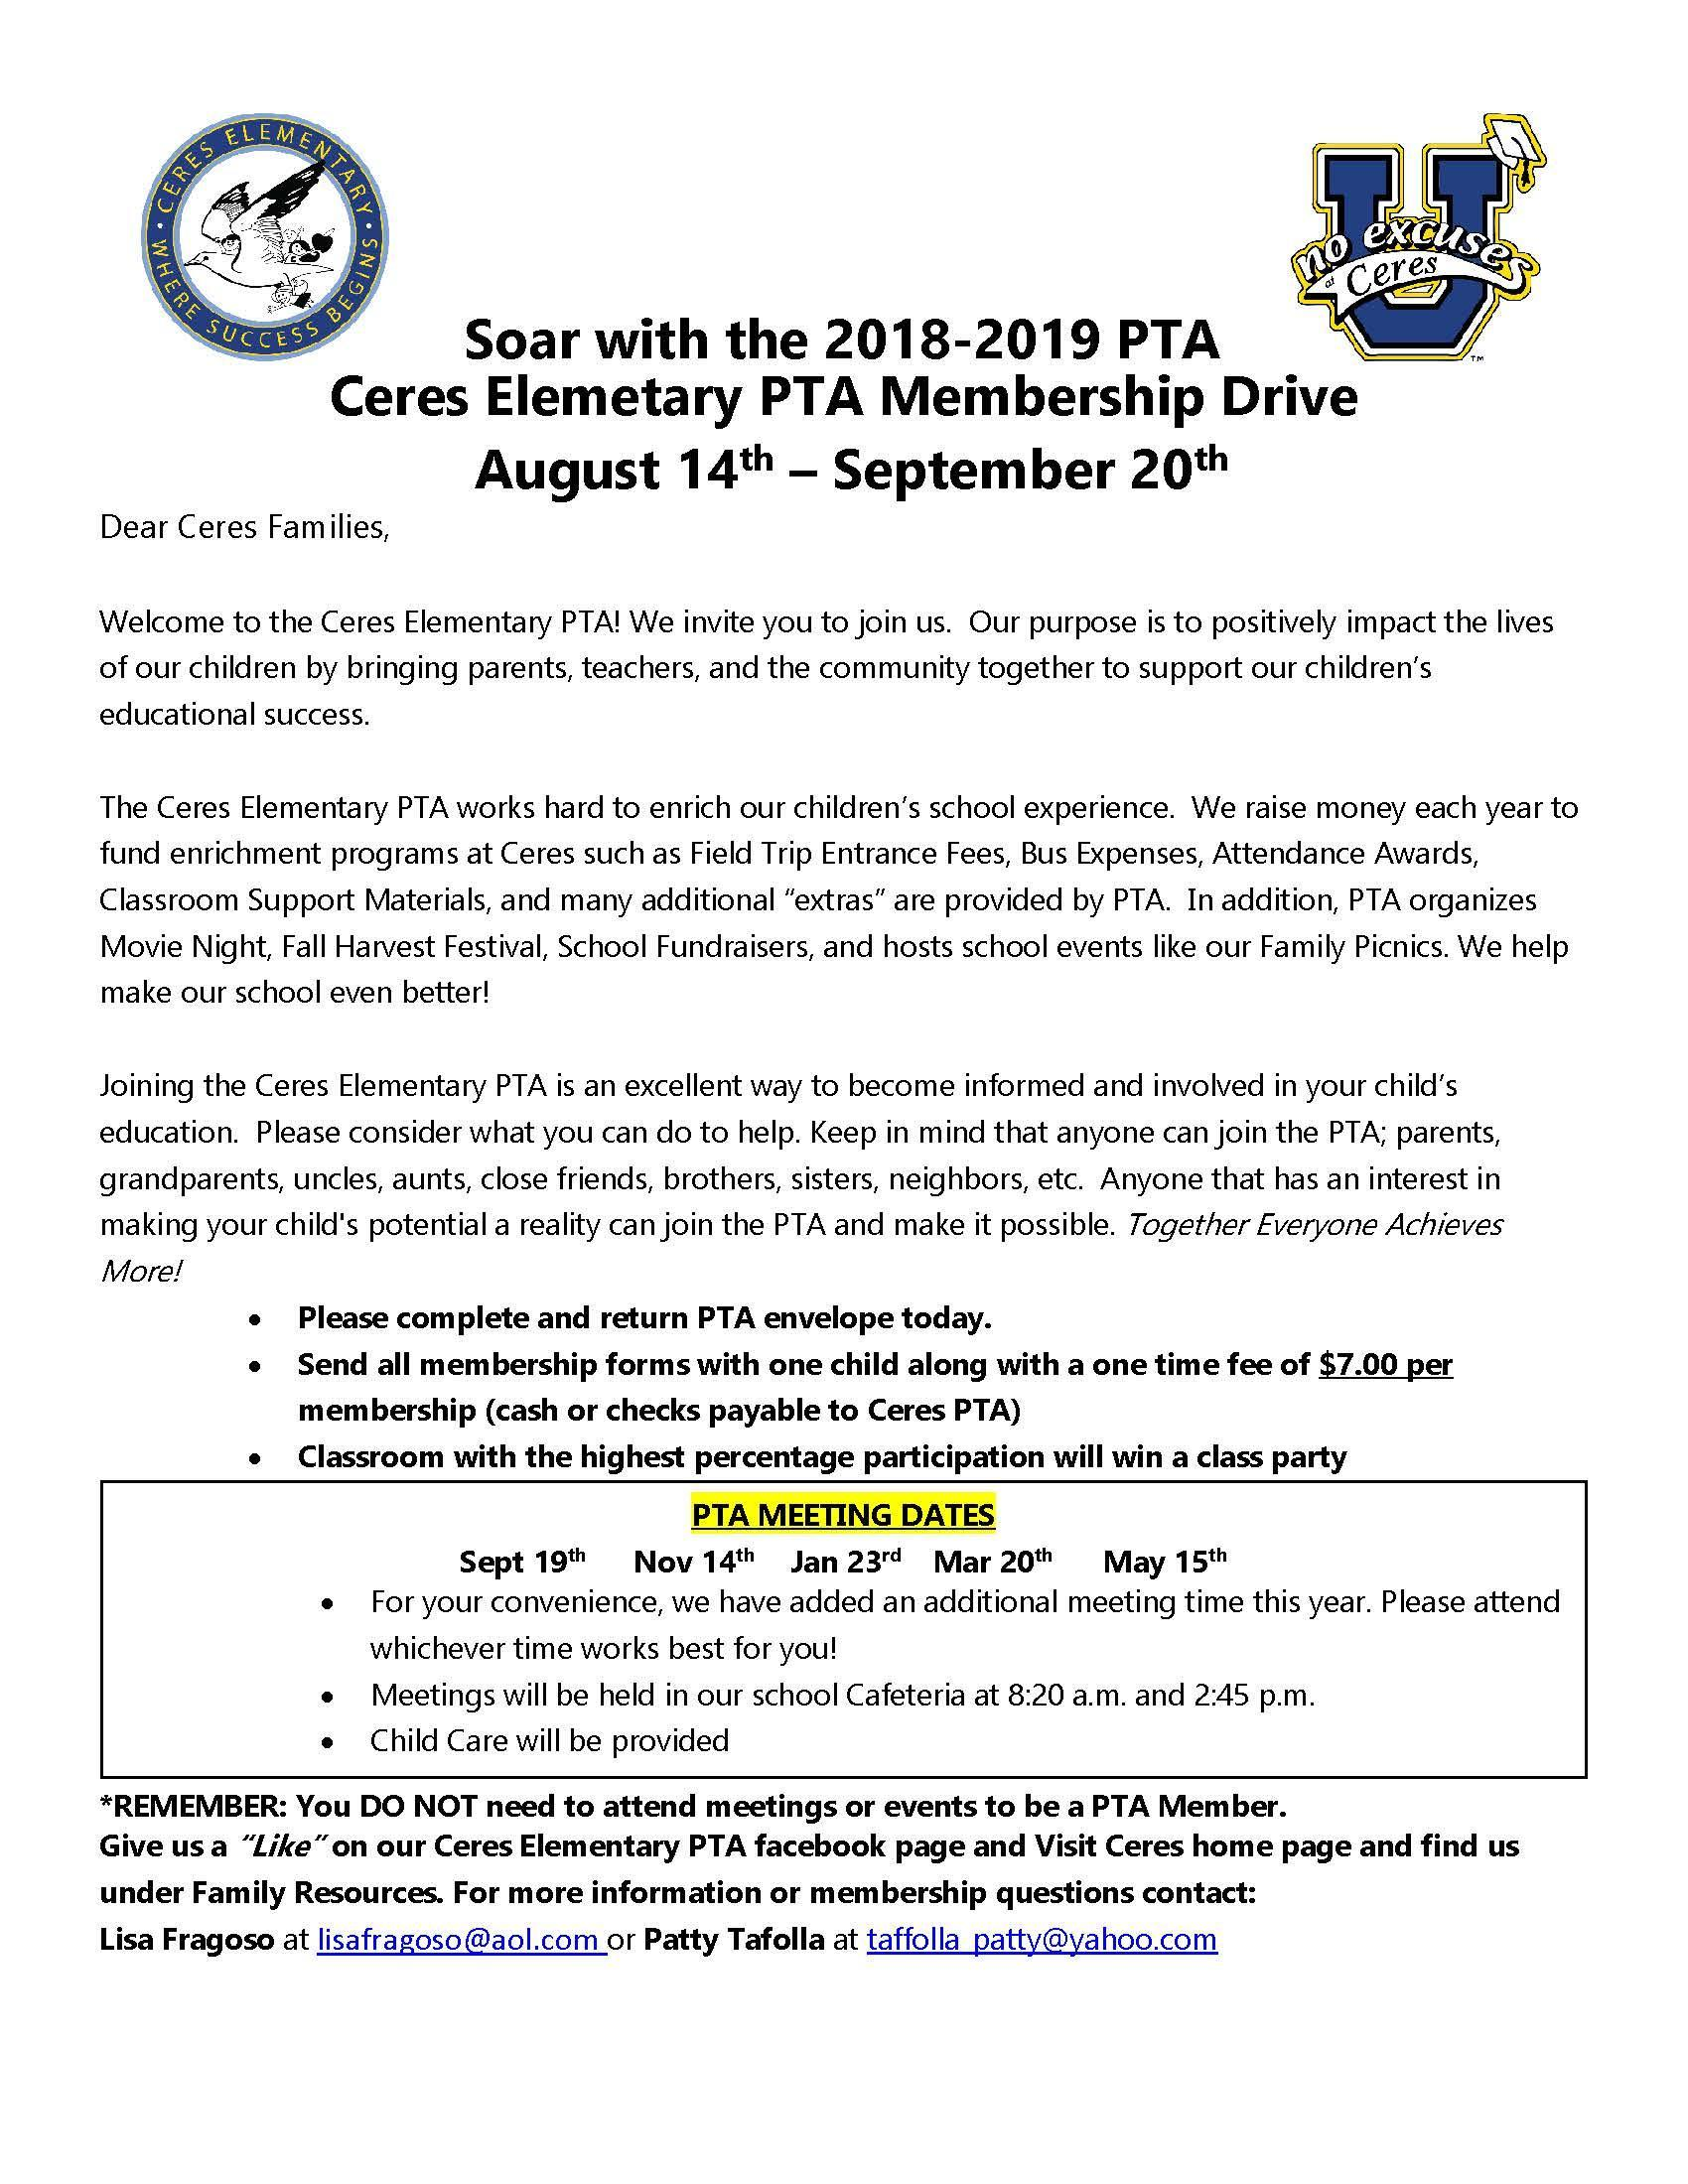 Letter for the Ceres PTA Membership Drive